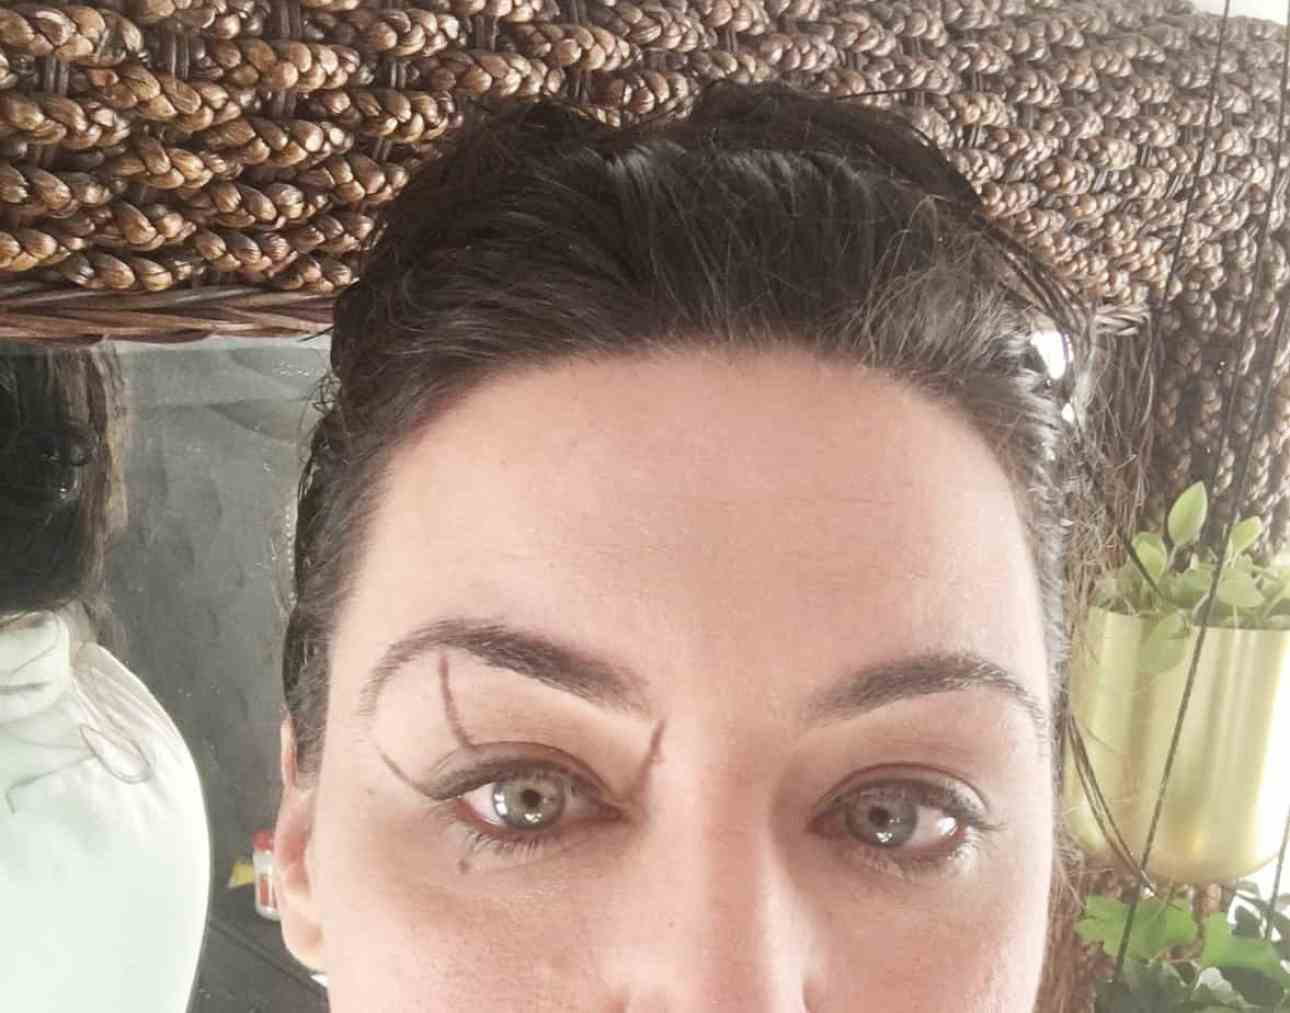 Drawing the lines to shape your brows.